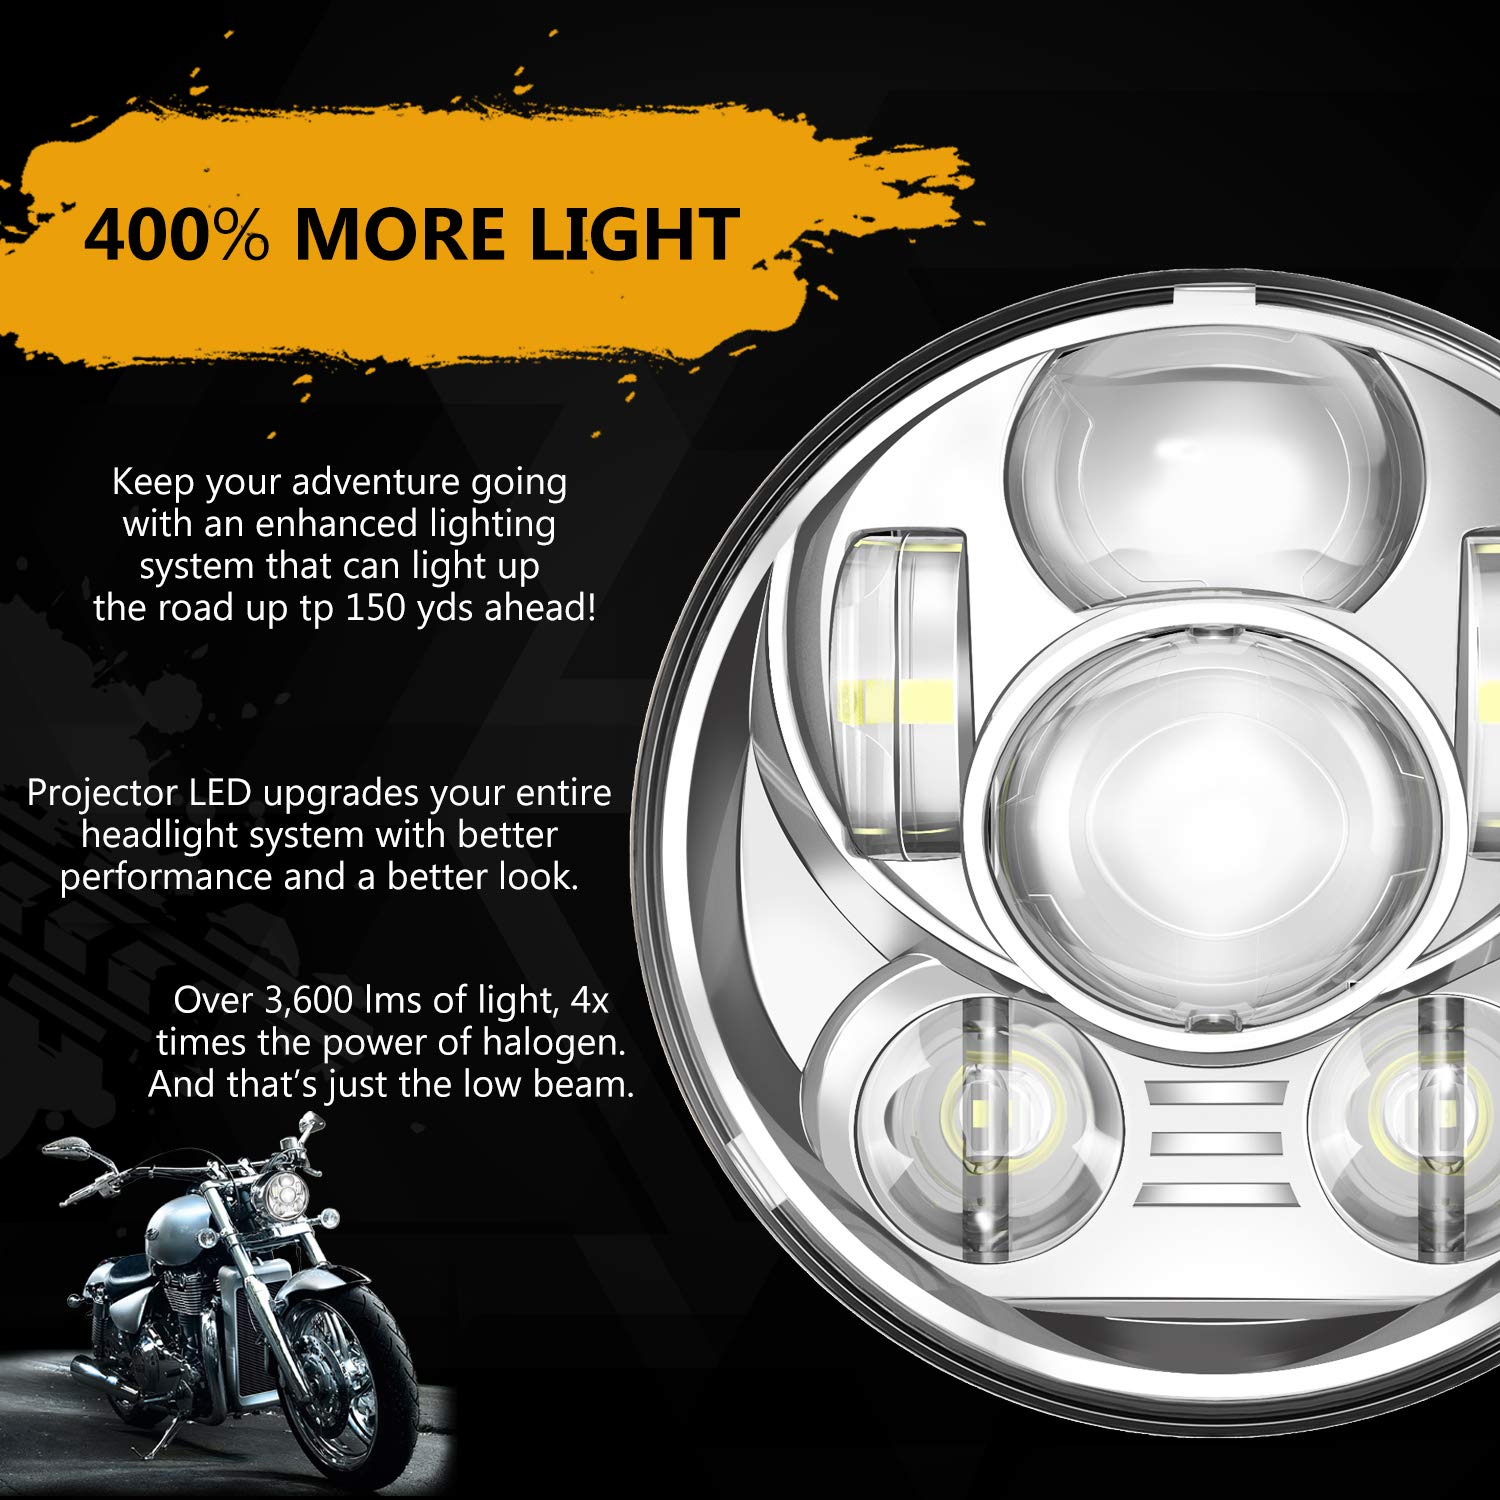 5-3//4 5.75 Inch Motorcycle Daymaker Projector LED Headlight for Harley Davidson Sportster Triumph xl1200c dyna low rider wide glide roadster nightster 883